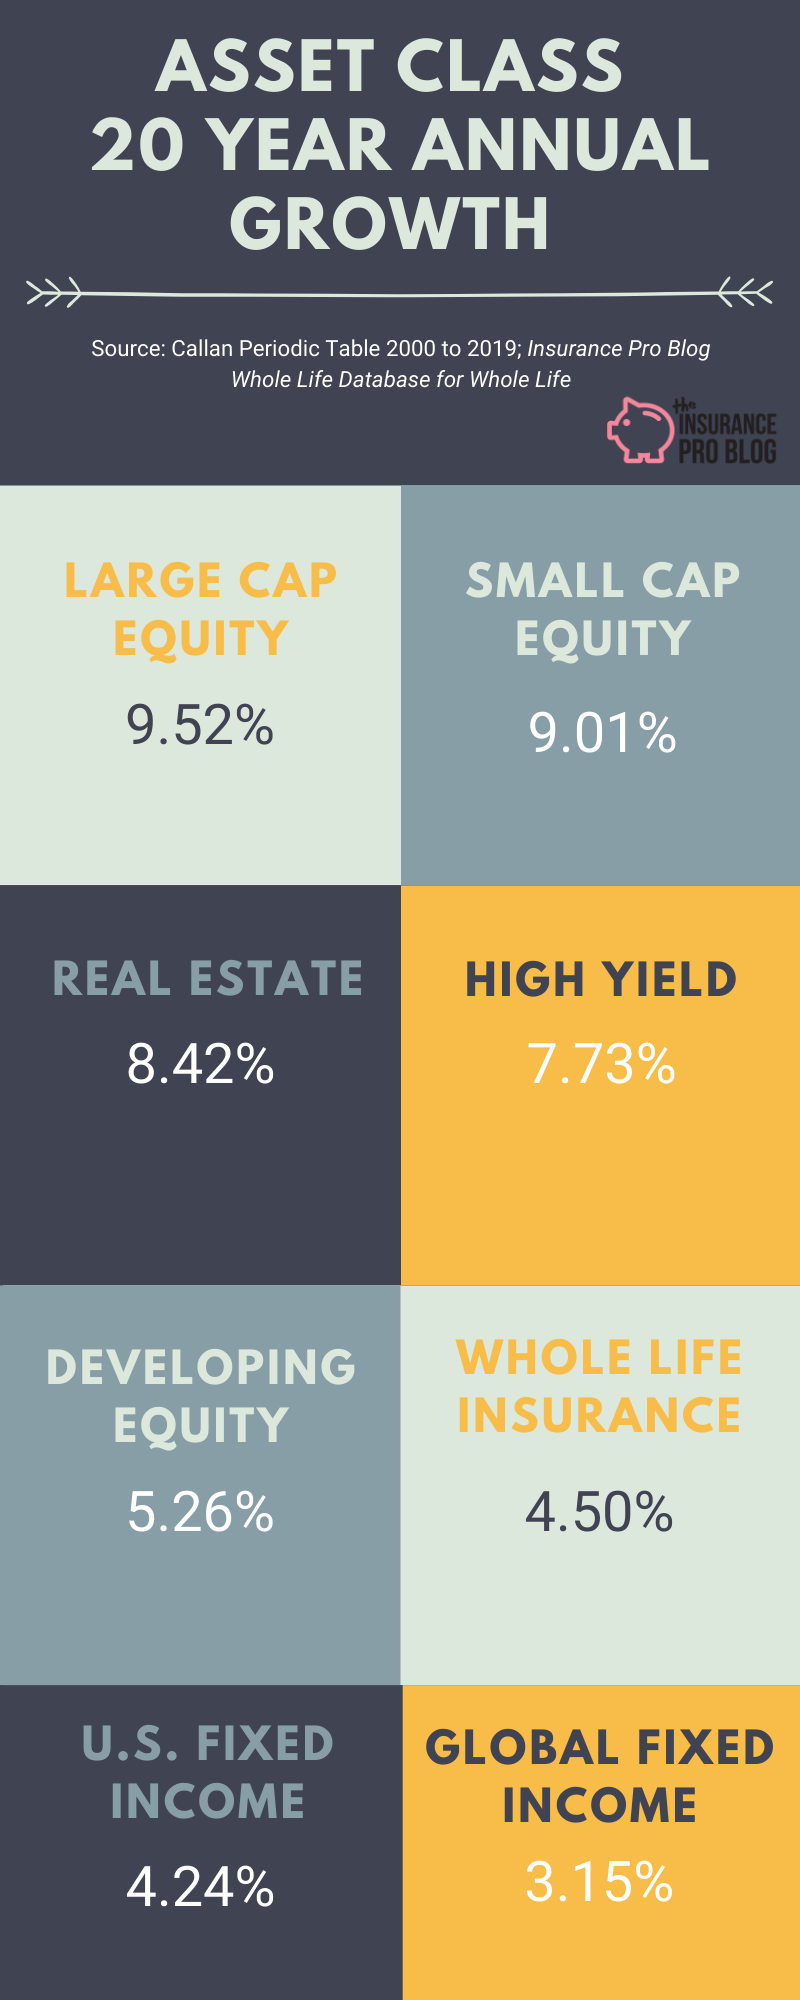 Historical returns on asset classes compared to whole life insurance